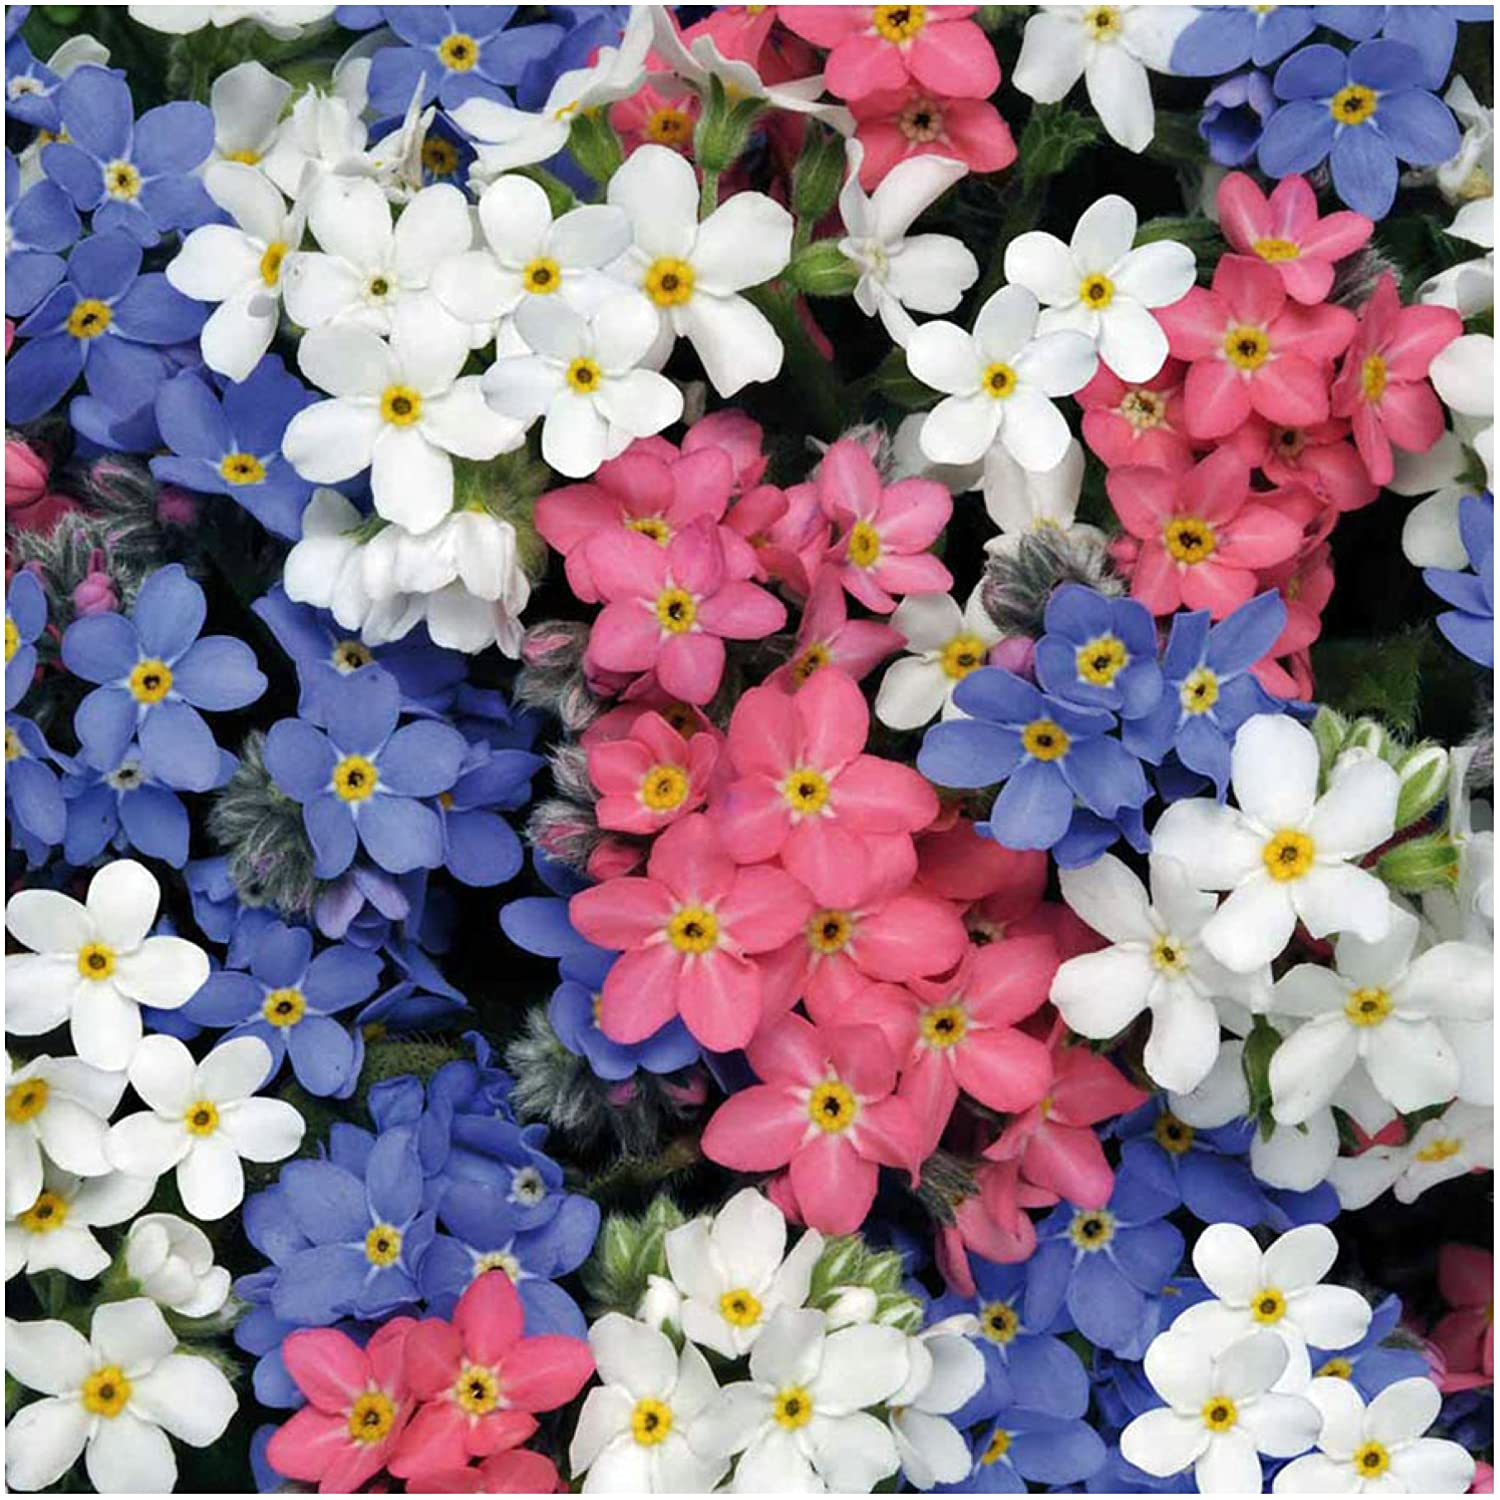 Amazon.com : Package of 1, 000 Seeds, Forget-Me-Not Mixed Colors ...